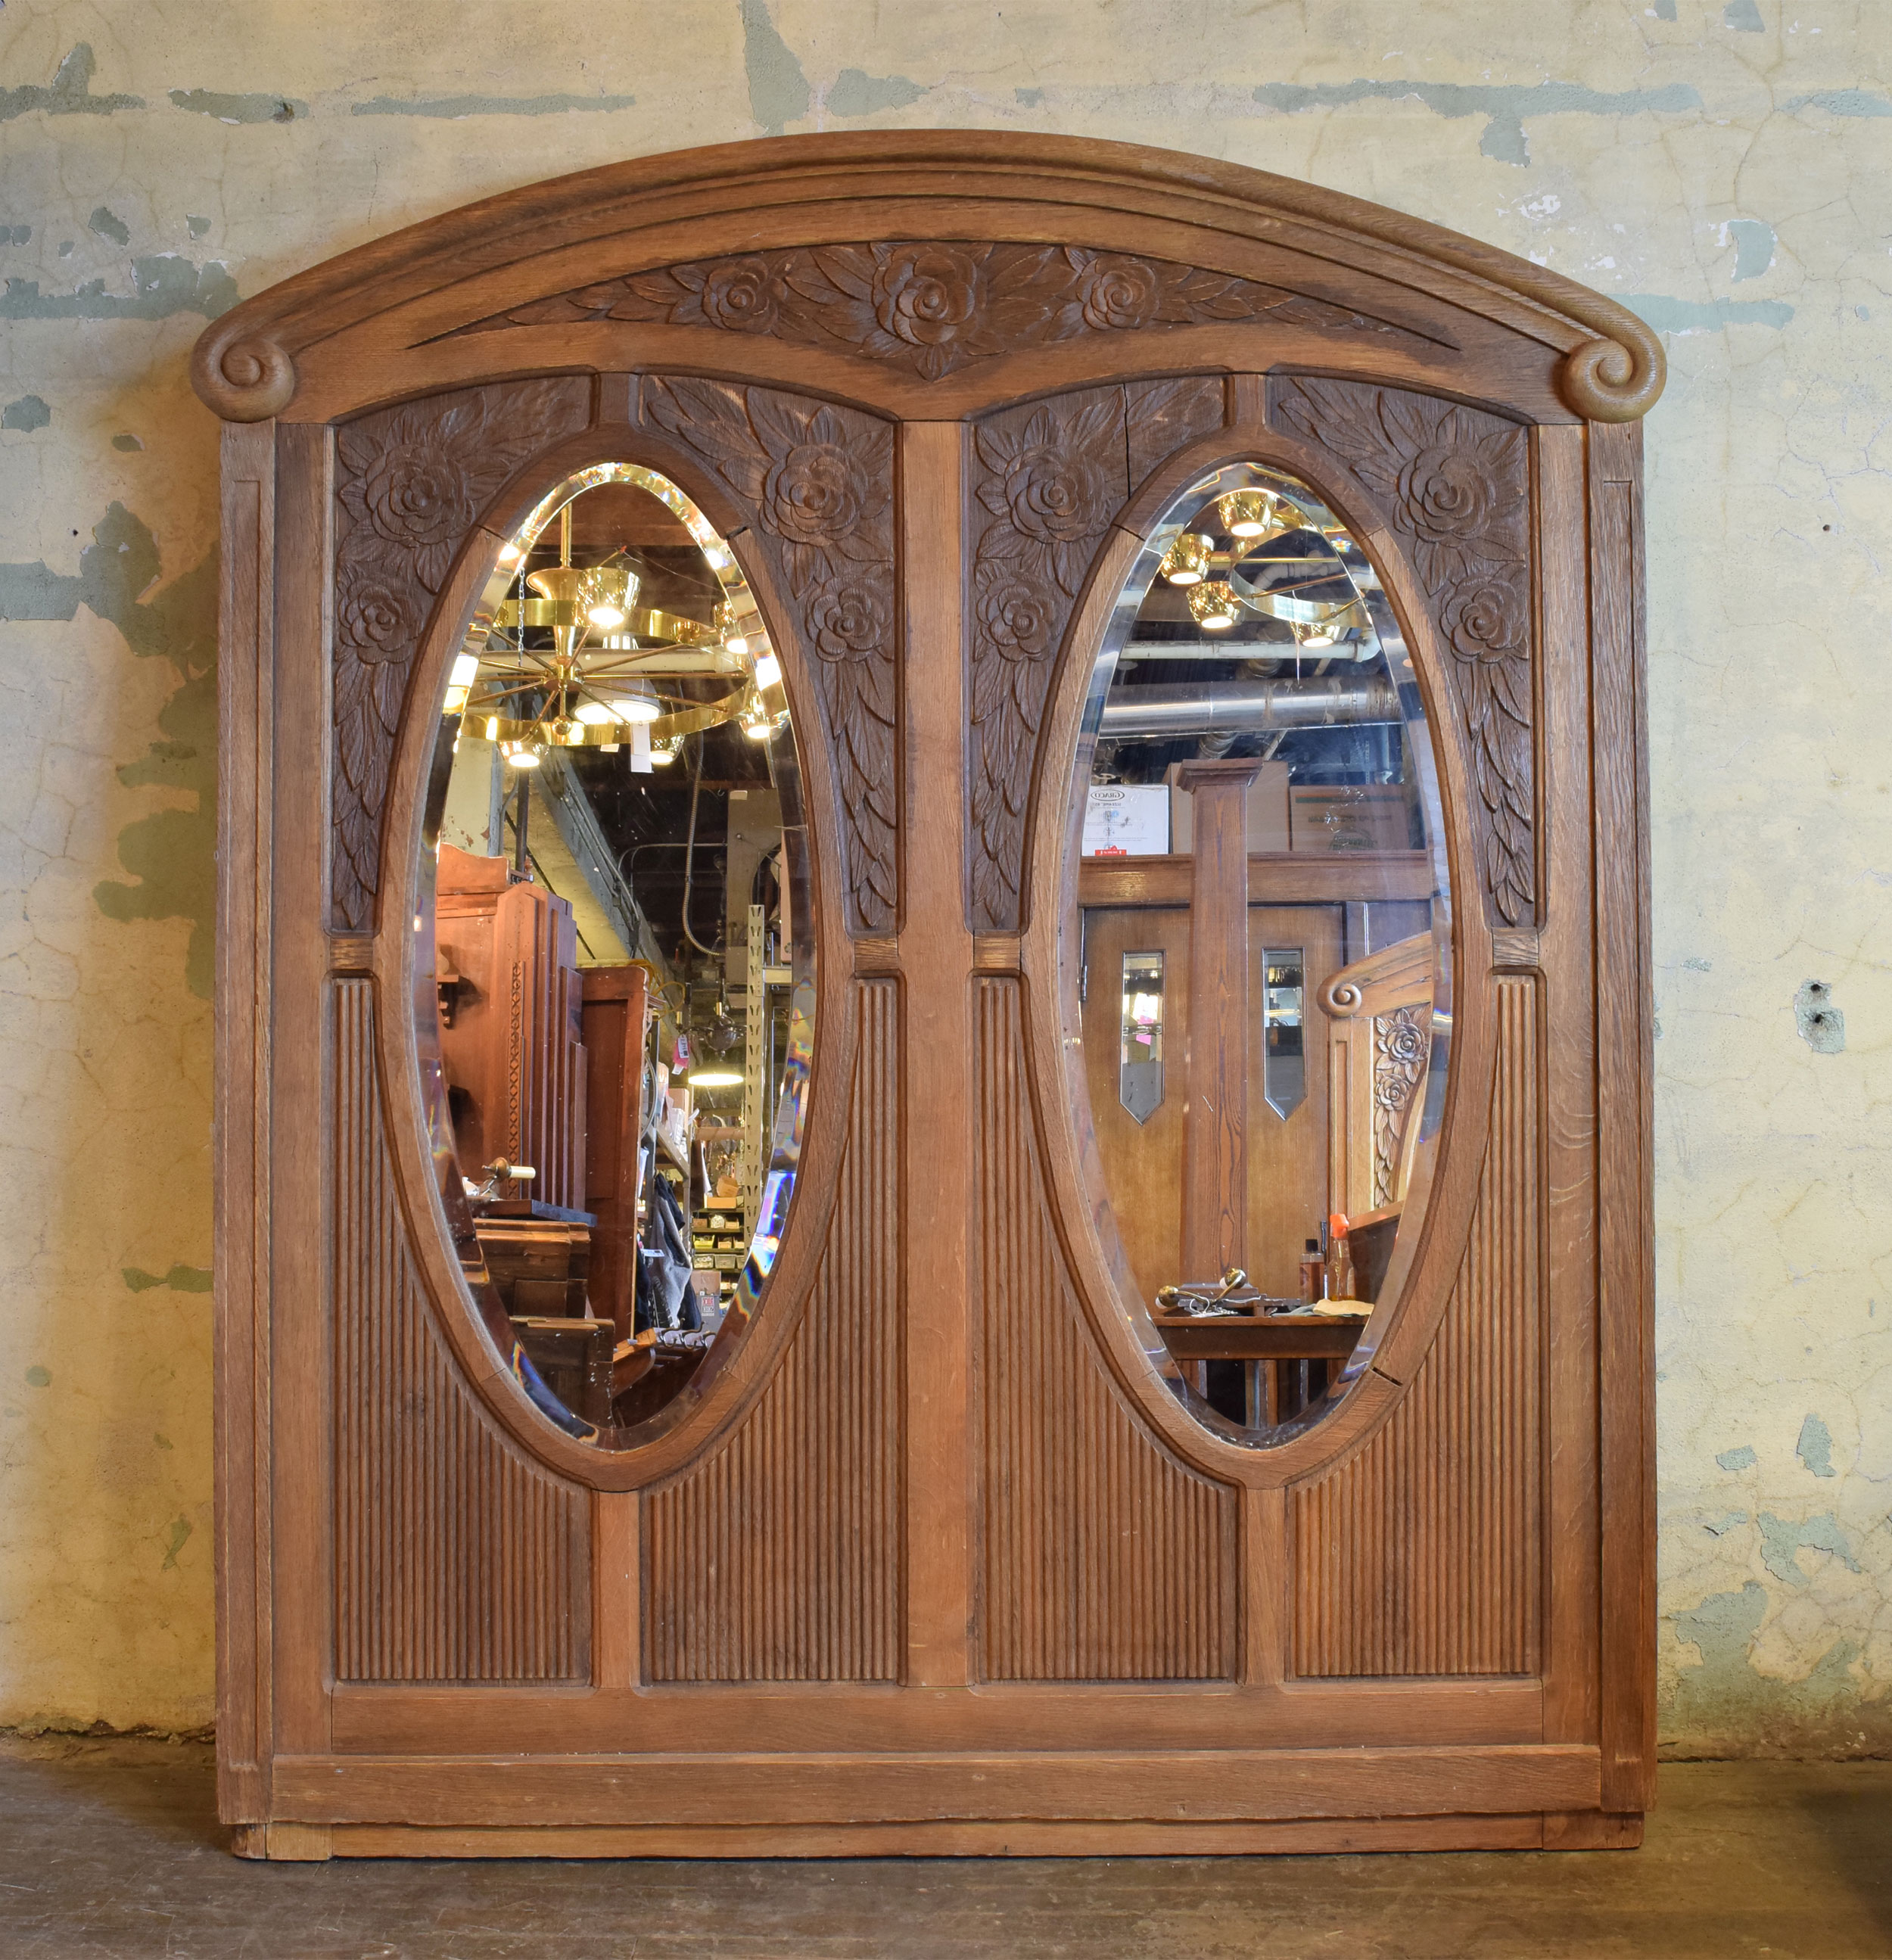 46992-oak-frame-with-oval-mirrors-background.jpg